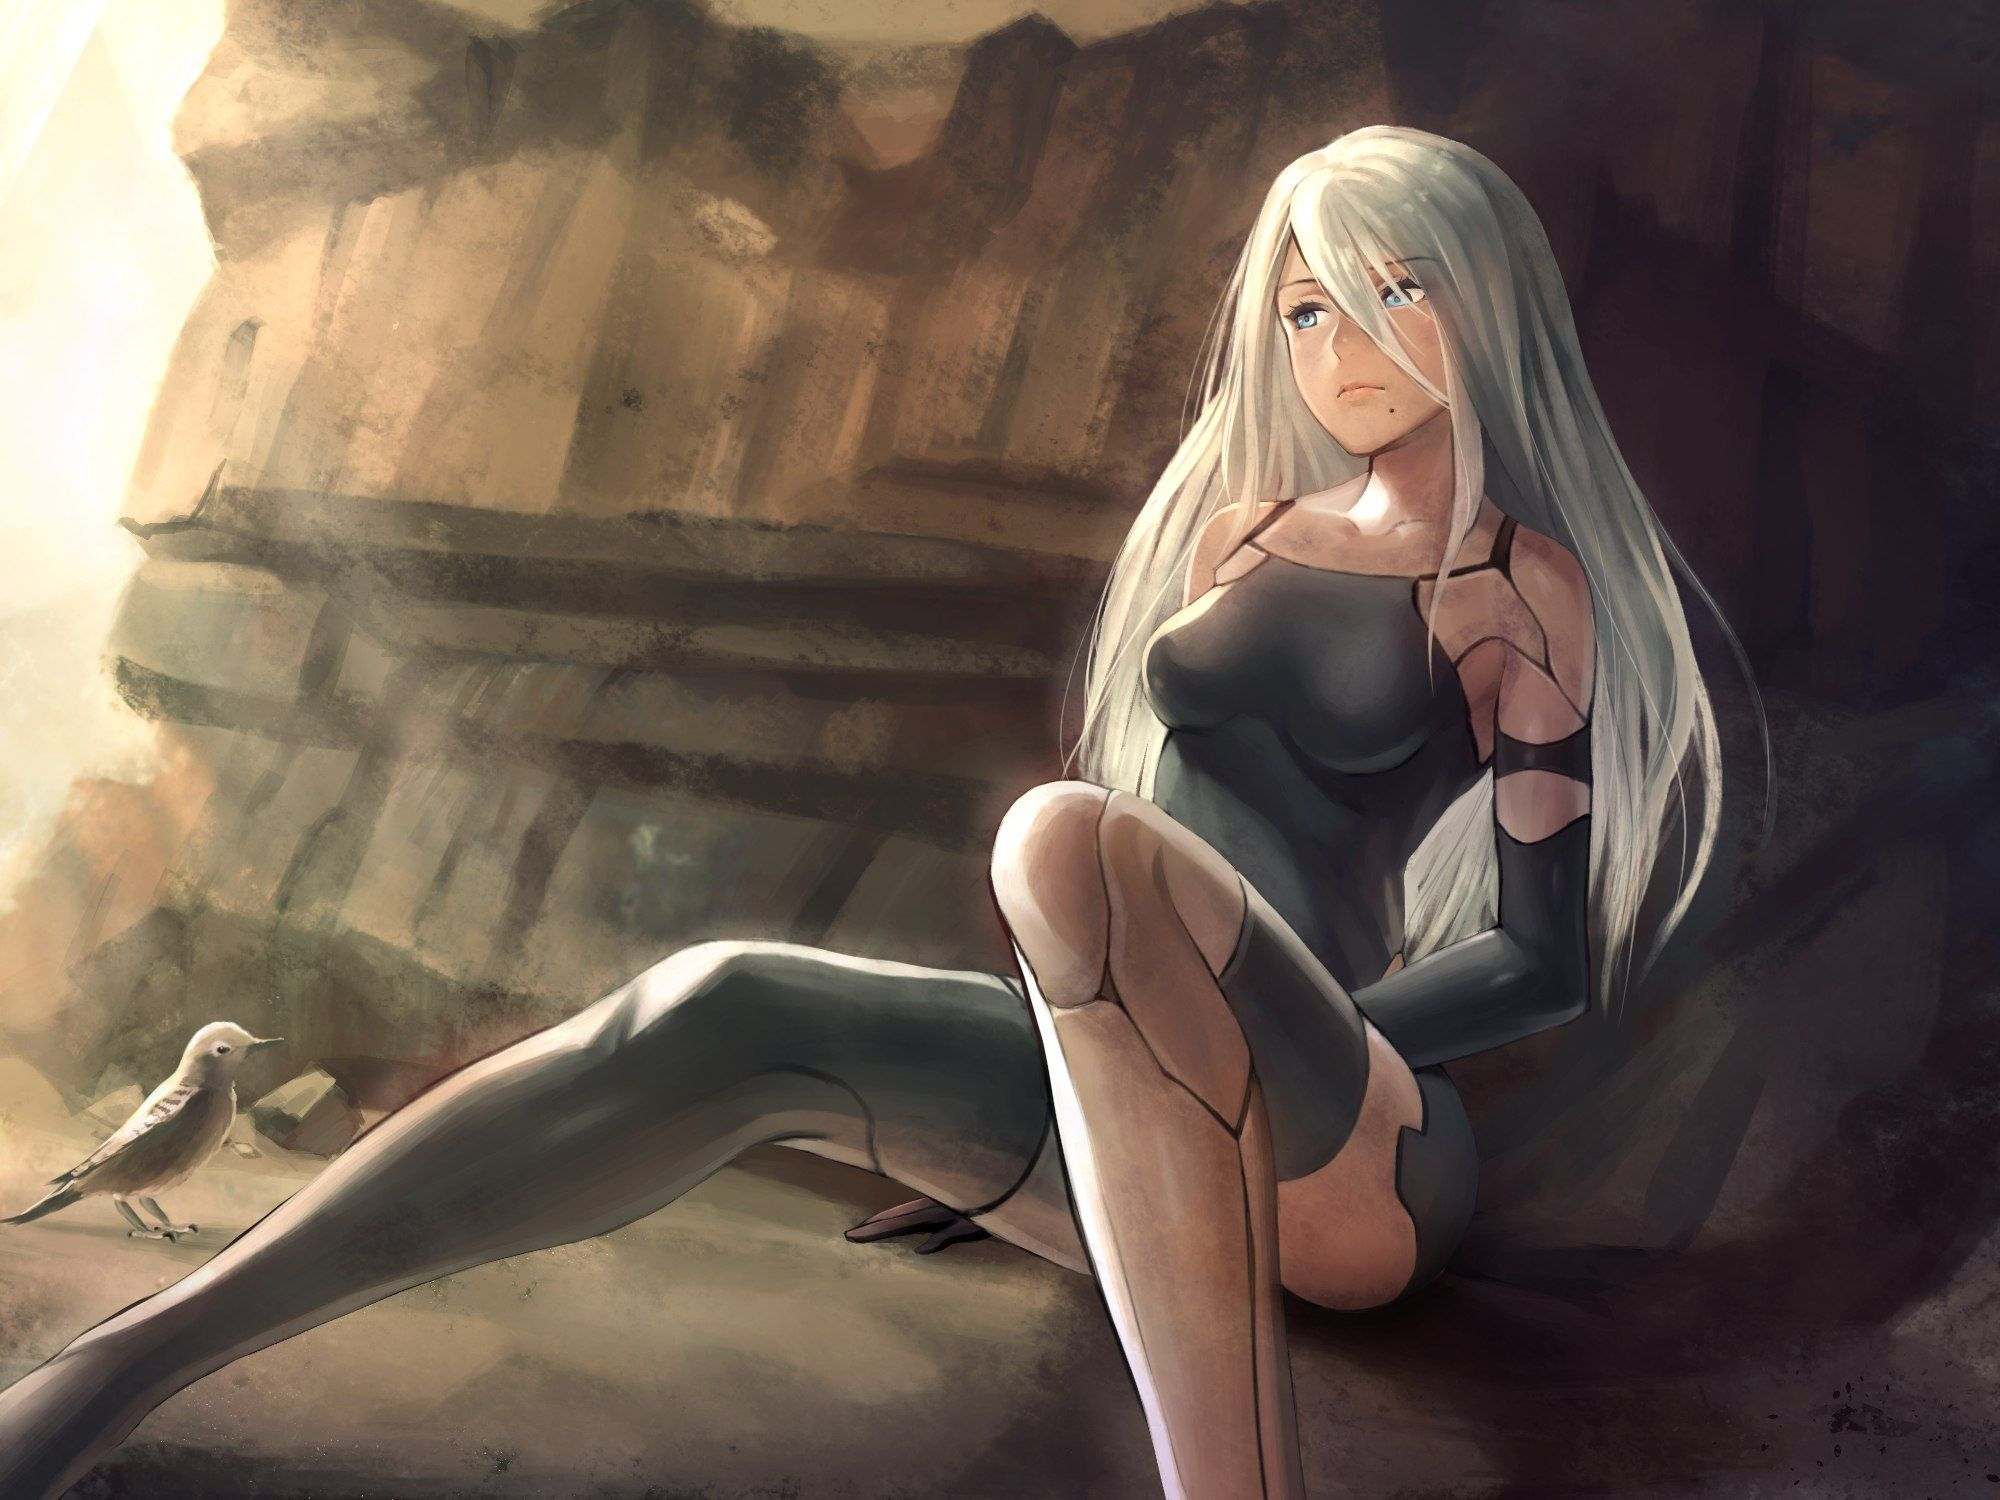 Image: Android, A2, art, game, NieR:Automata, sitting, cave, light, bird, girl